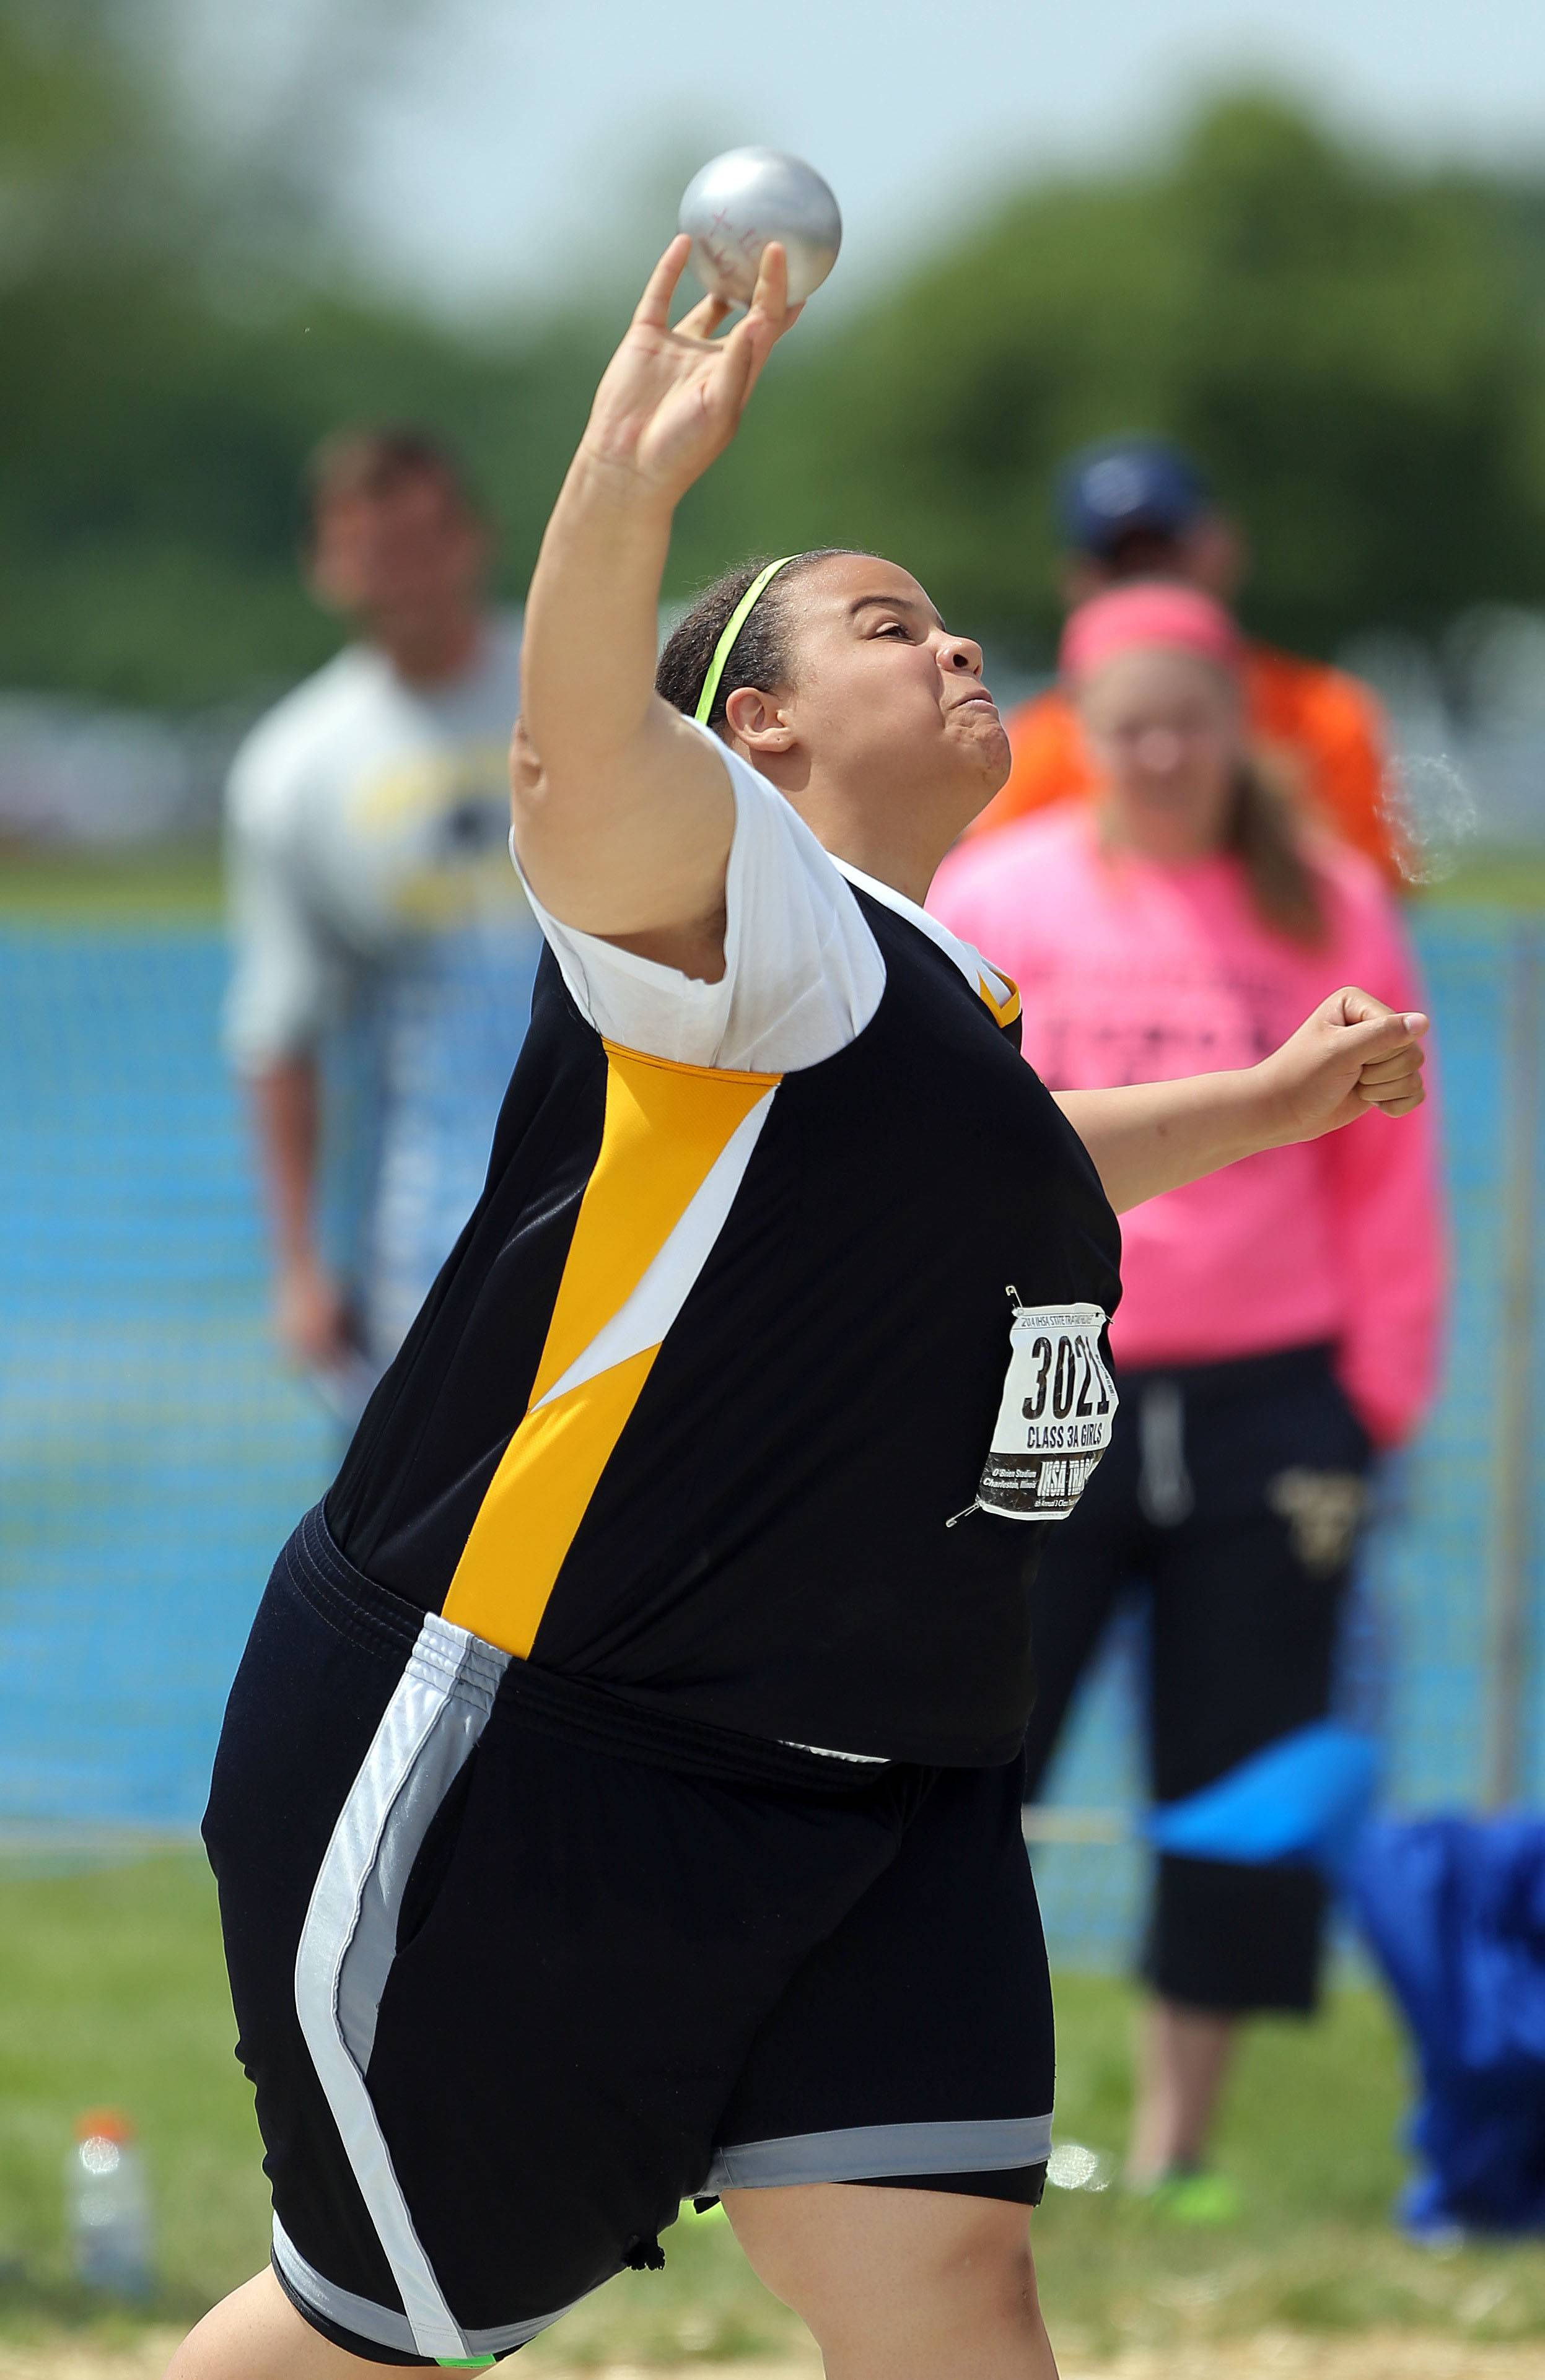 Metea Valley's Courtney Morgan competes in the class 3A shot put during the girls track and field state finals at Eastern Illinois University in Charleston Saturday.